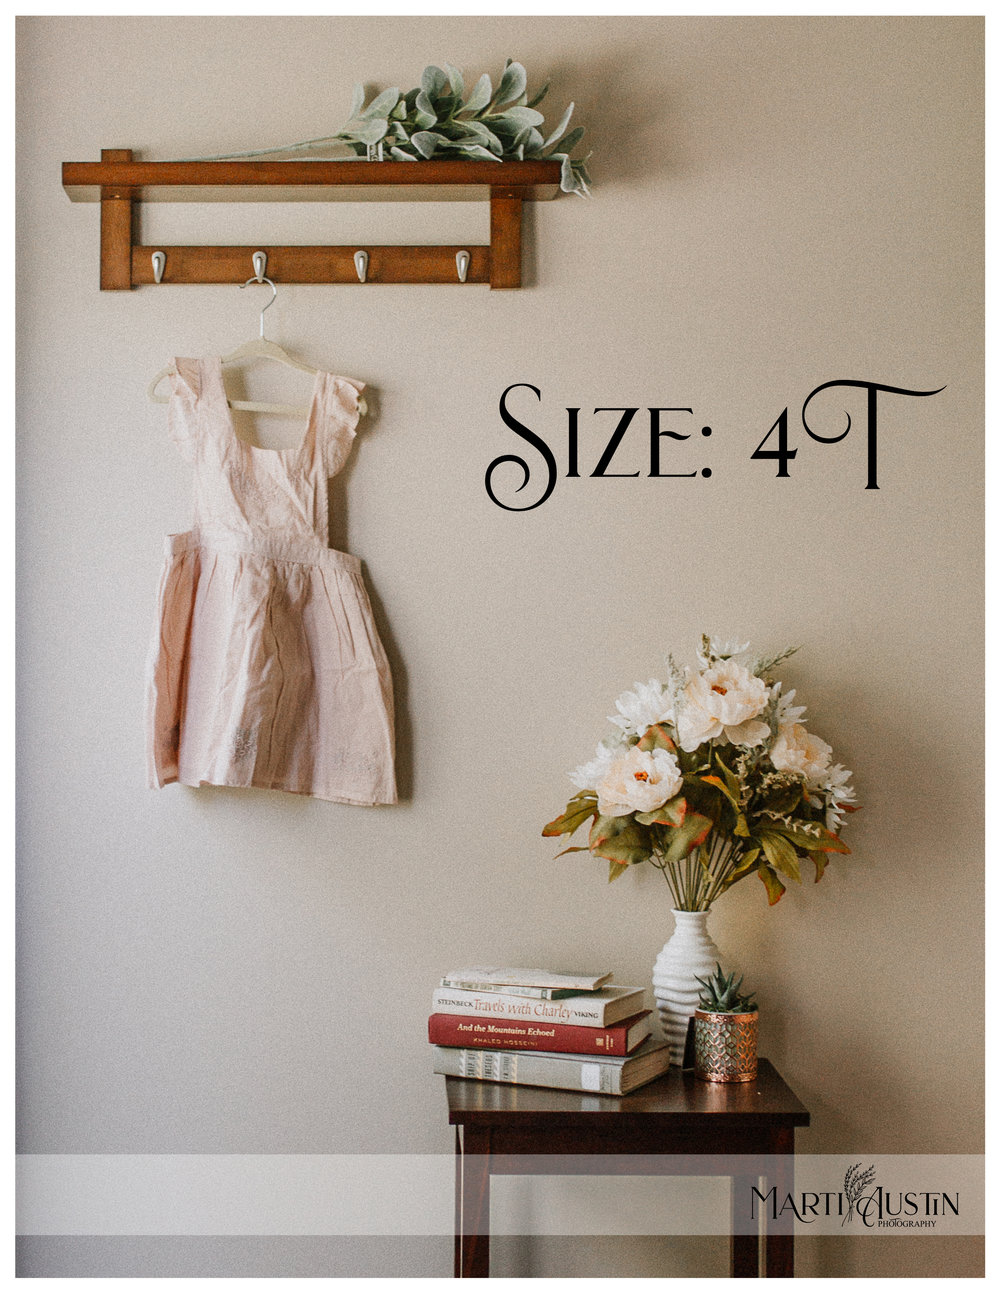 Toddler's pink dress hanging on the wall next to a table with books and flowers